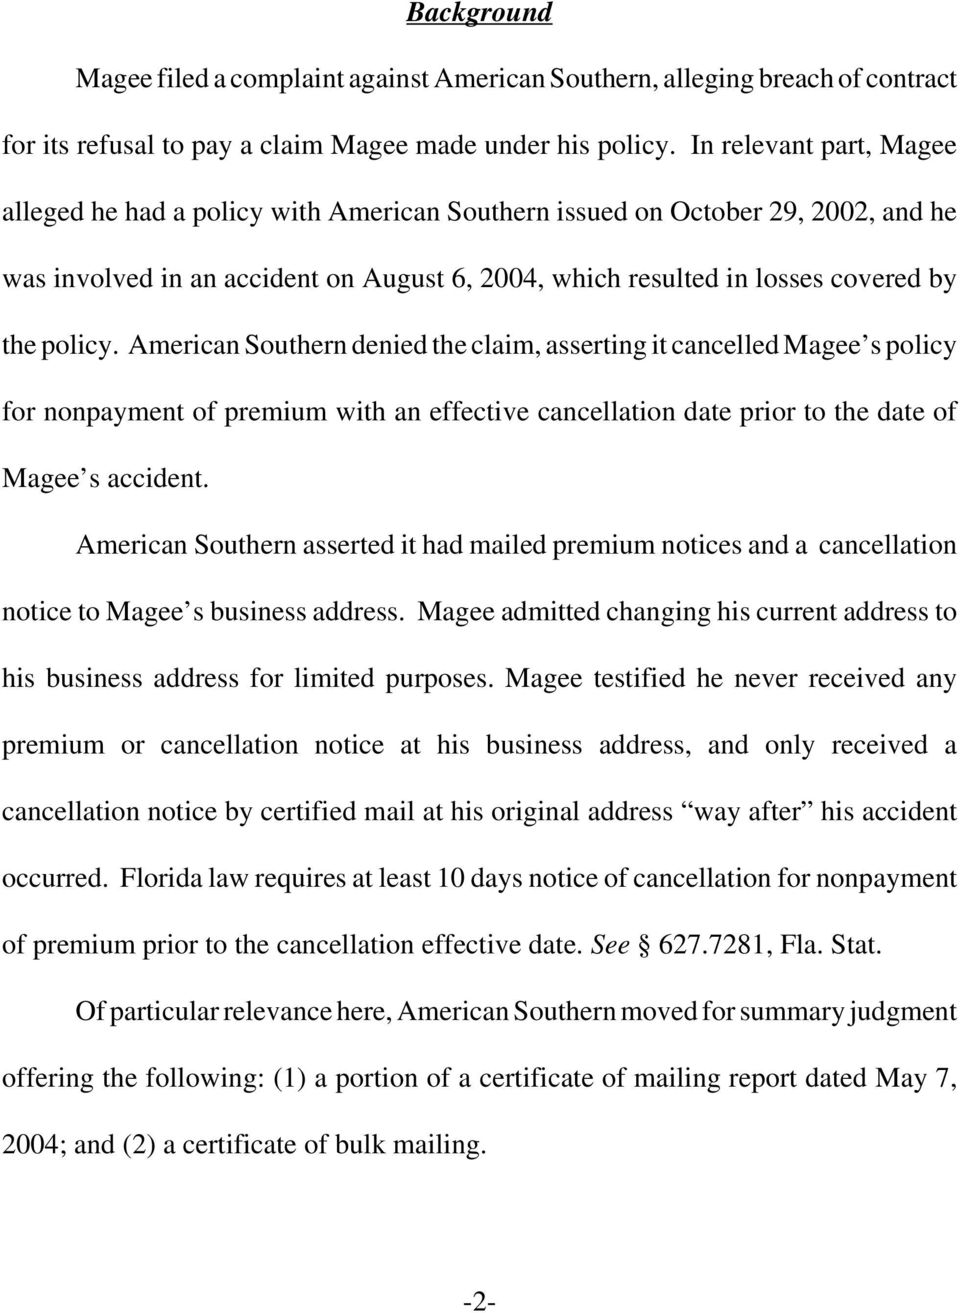 American Southern denied the claim, asserting it cancelled Magee s policy for nonpayment of premium with an effective cancellation date prior to the date of Magee s accident.